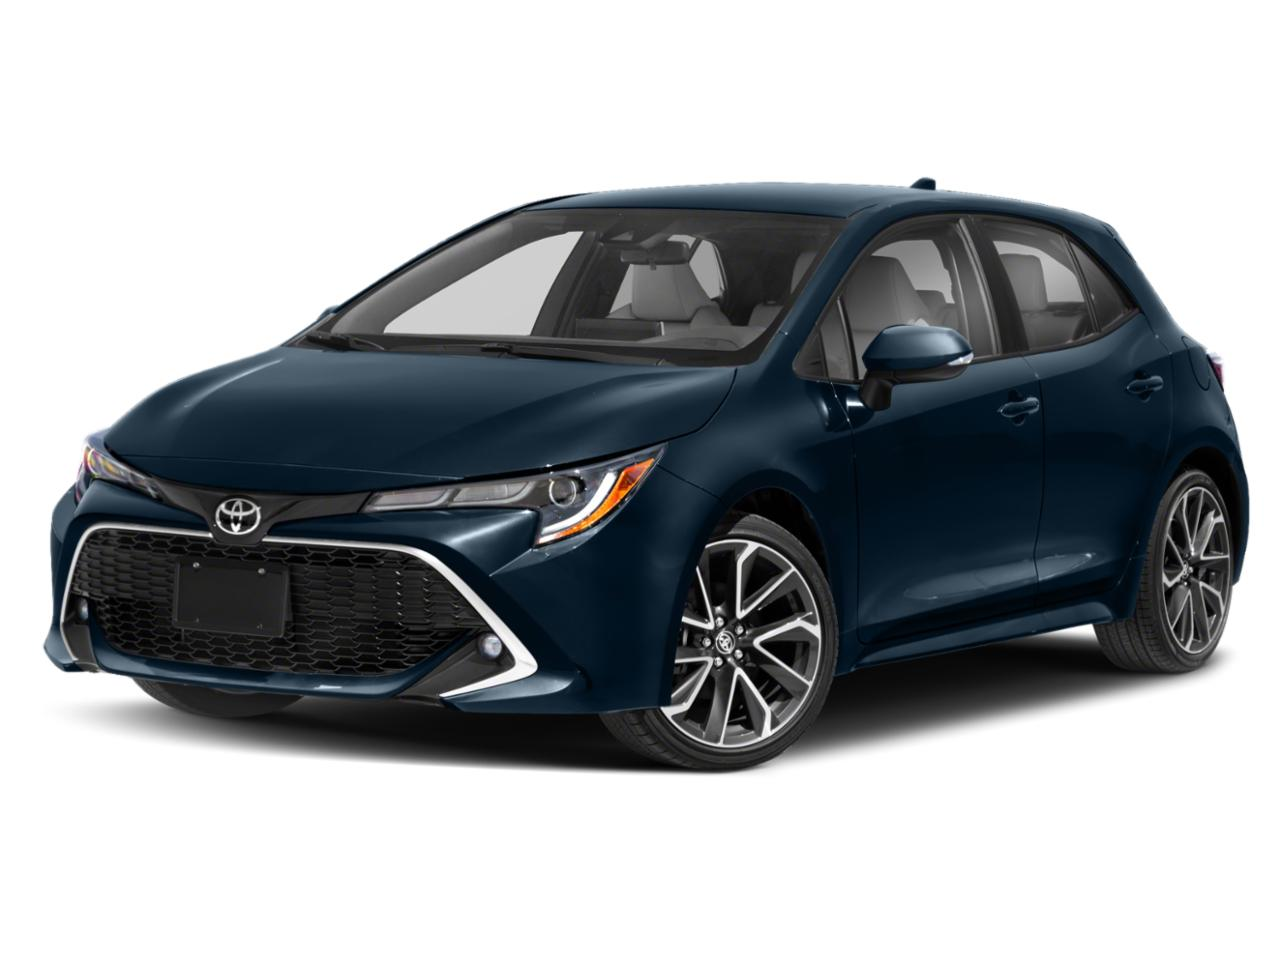 2019 Toyota Corolla Hatchback Vehicle Photo in Colorado Springs, CO 80905